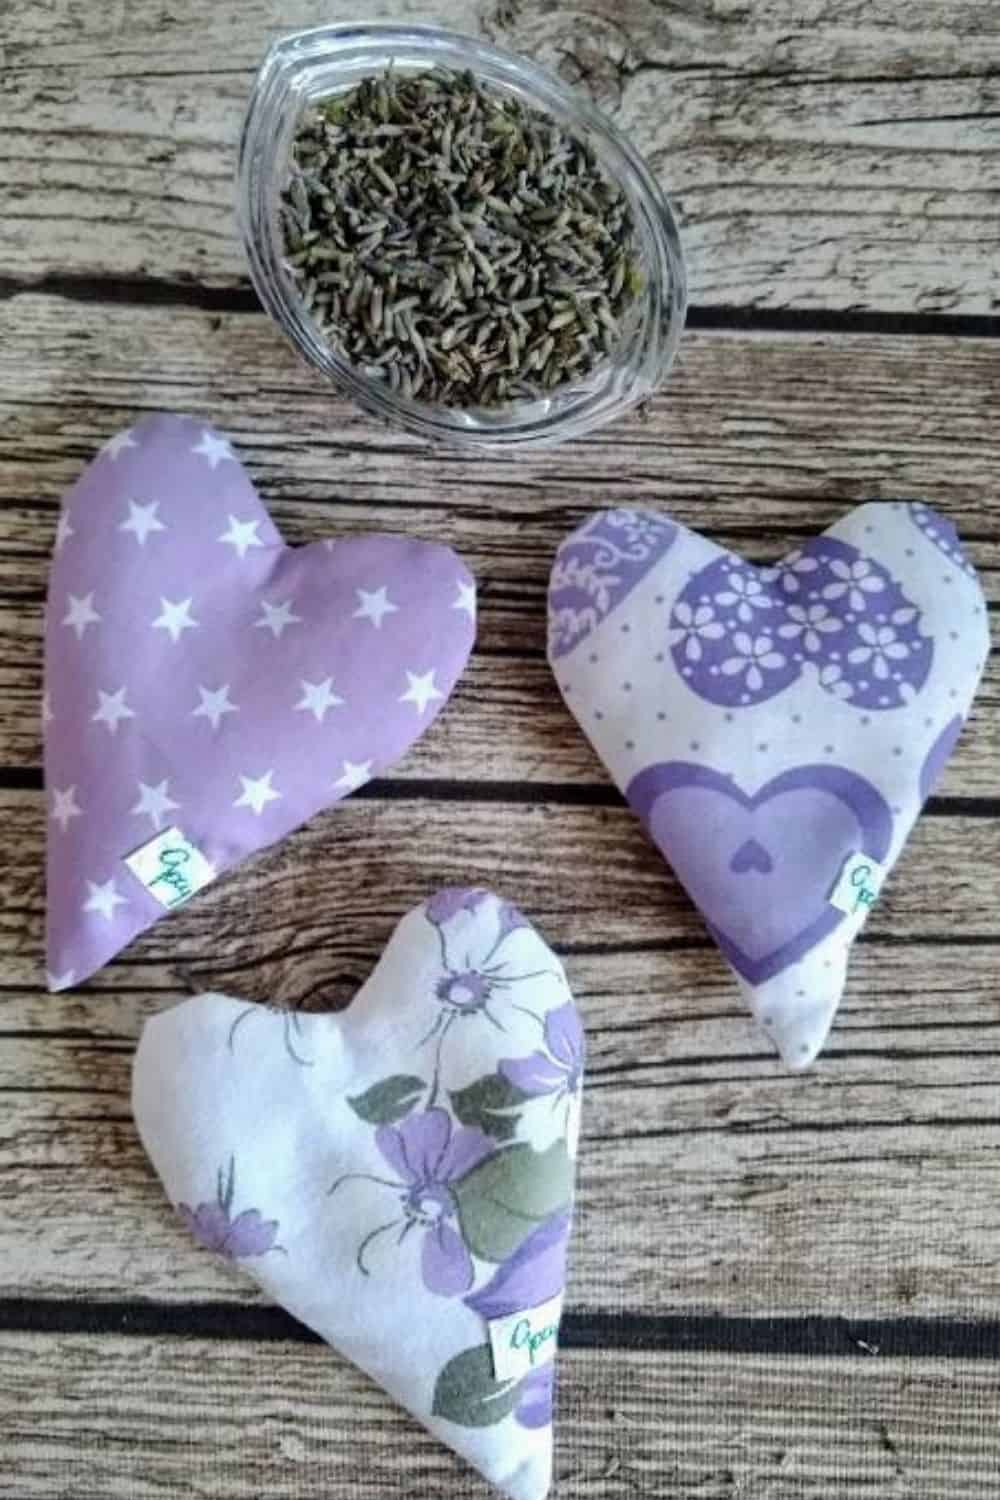 3 heart shaped pouches filled with lavender